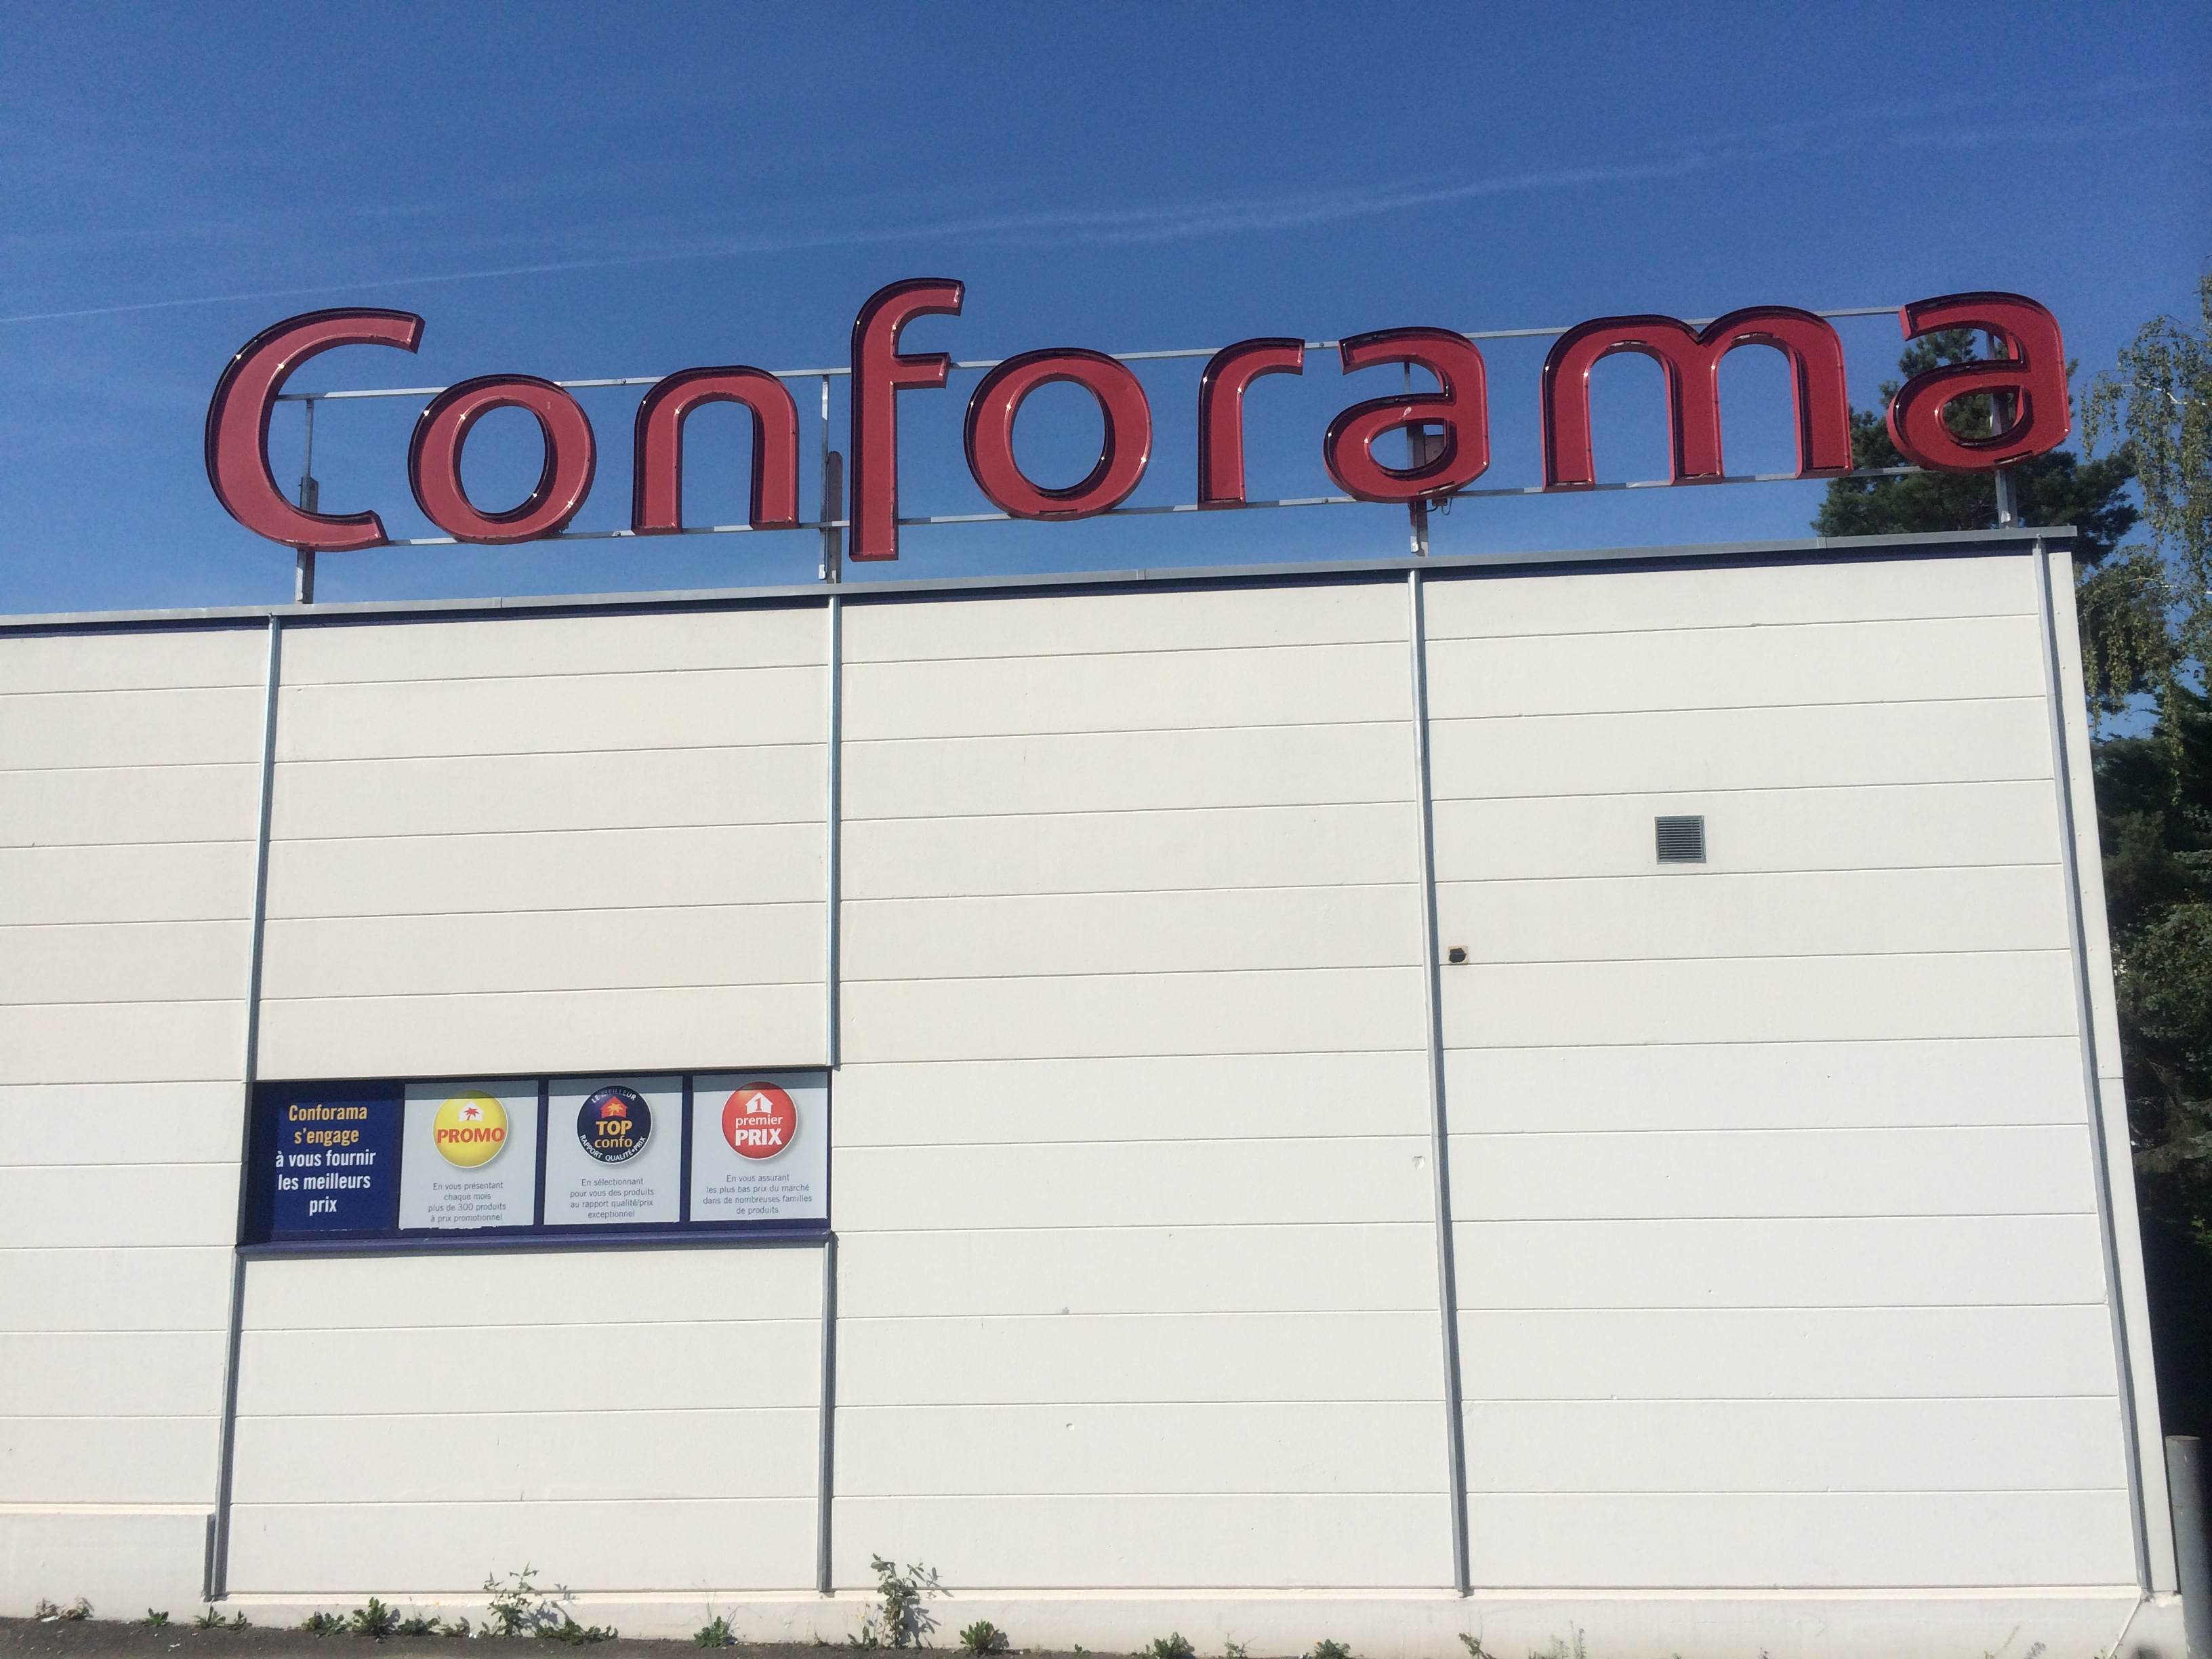 Conforama Sofa Gabon Where To Buy Housewares And Home Furnishings In Geneva Living In